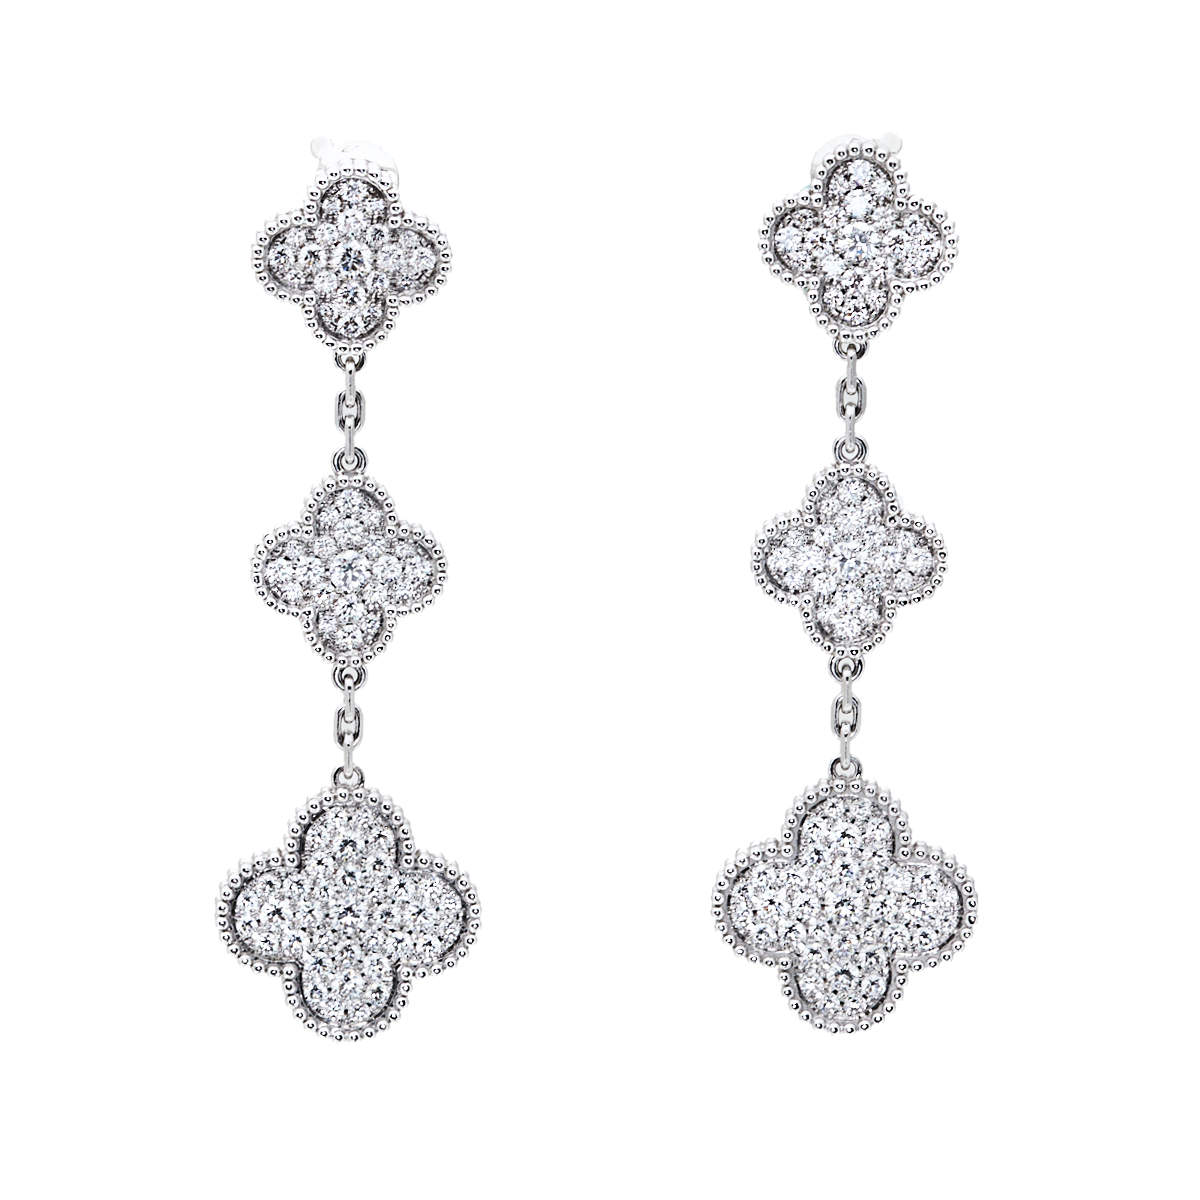 Van Cleef & Arpels Magic Alhambra Diamond 18K White Gold Earrings